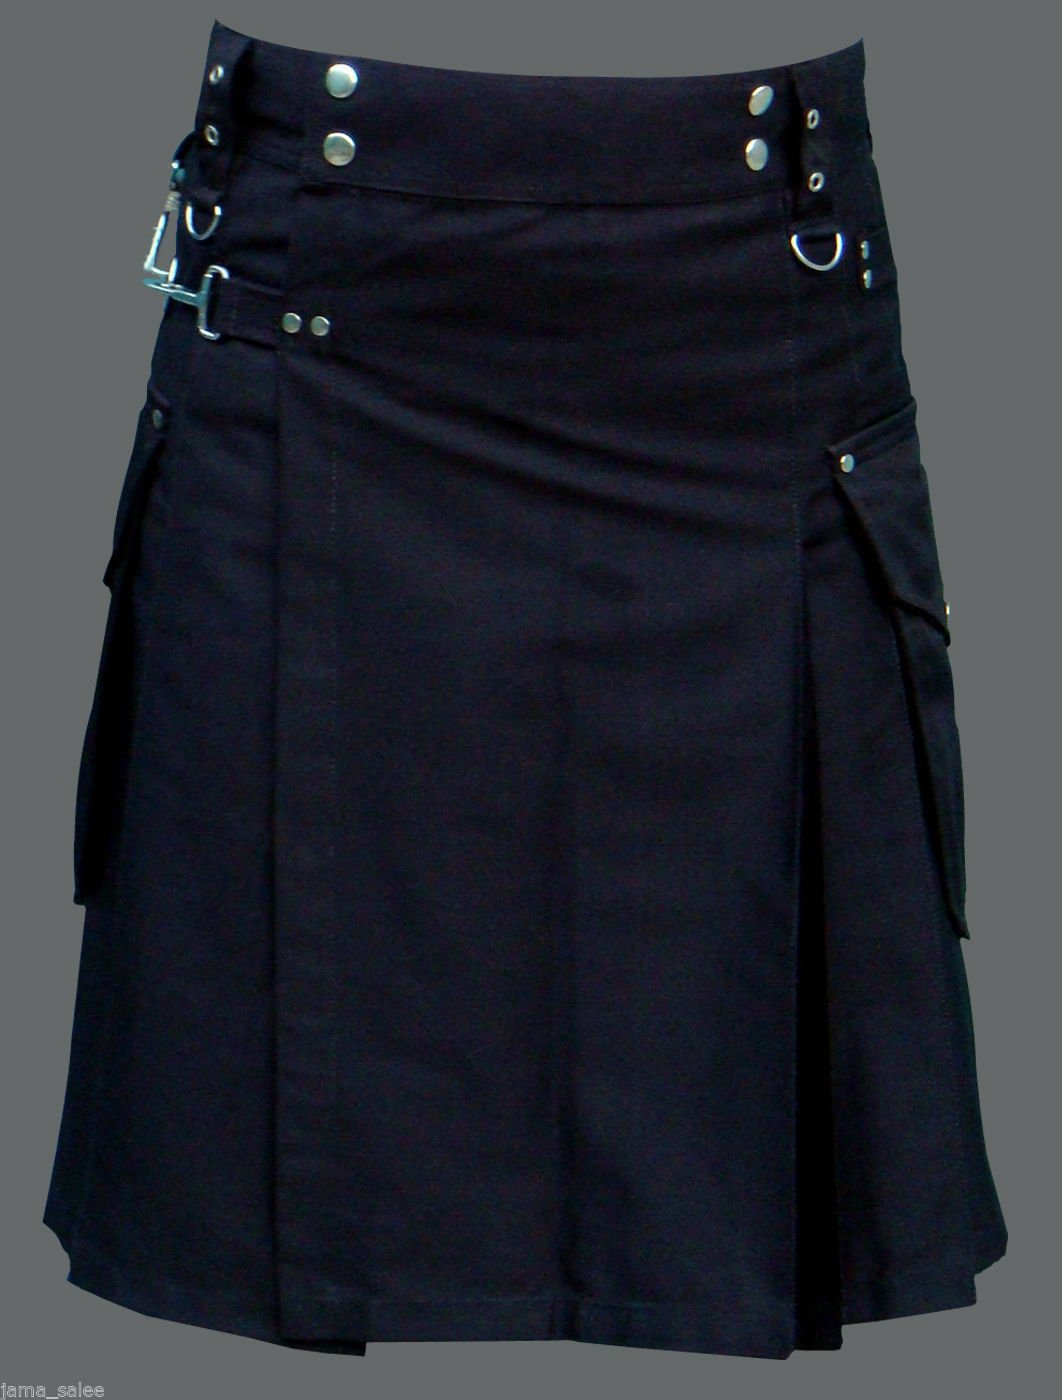 Men 50 Waist Handmade Black Deluxe Utility Kilt 100% Cotton With Cargo Pockets